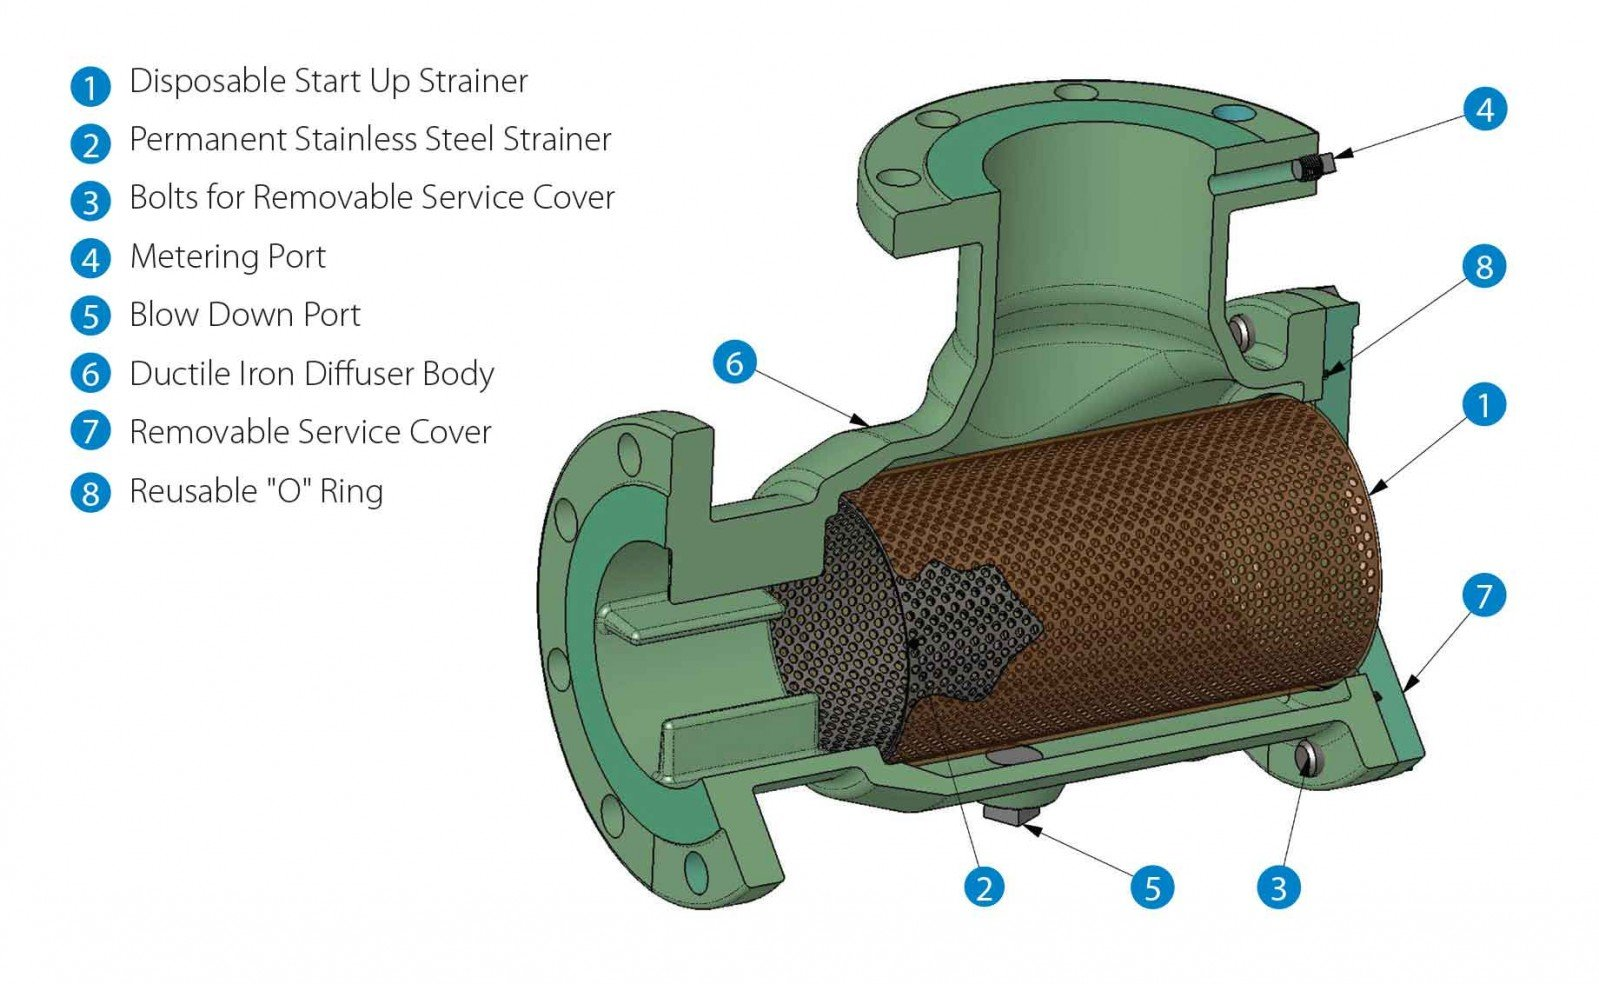 suction diffuser